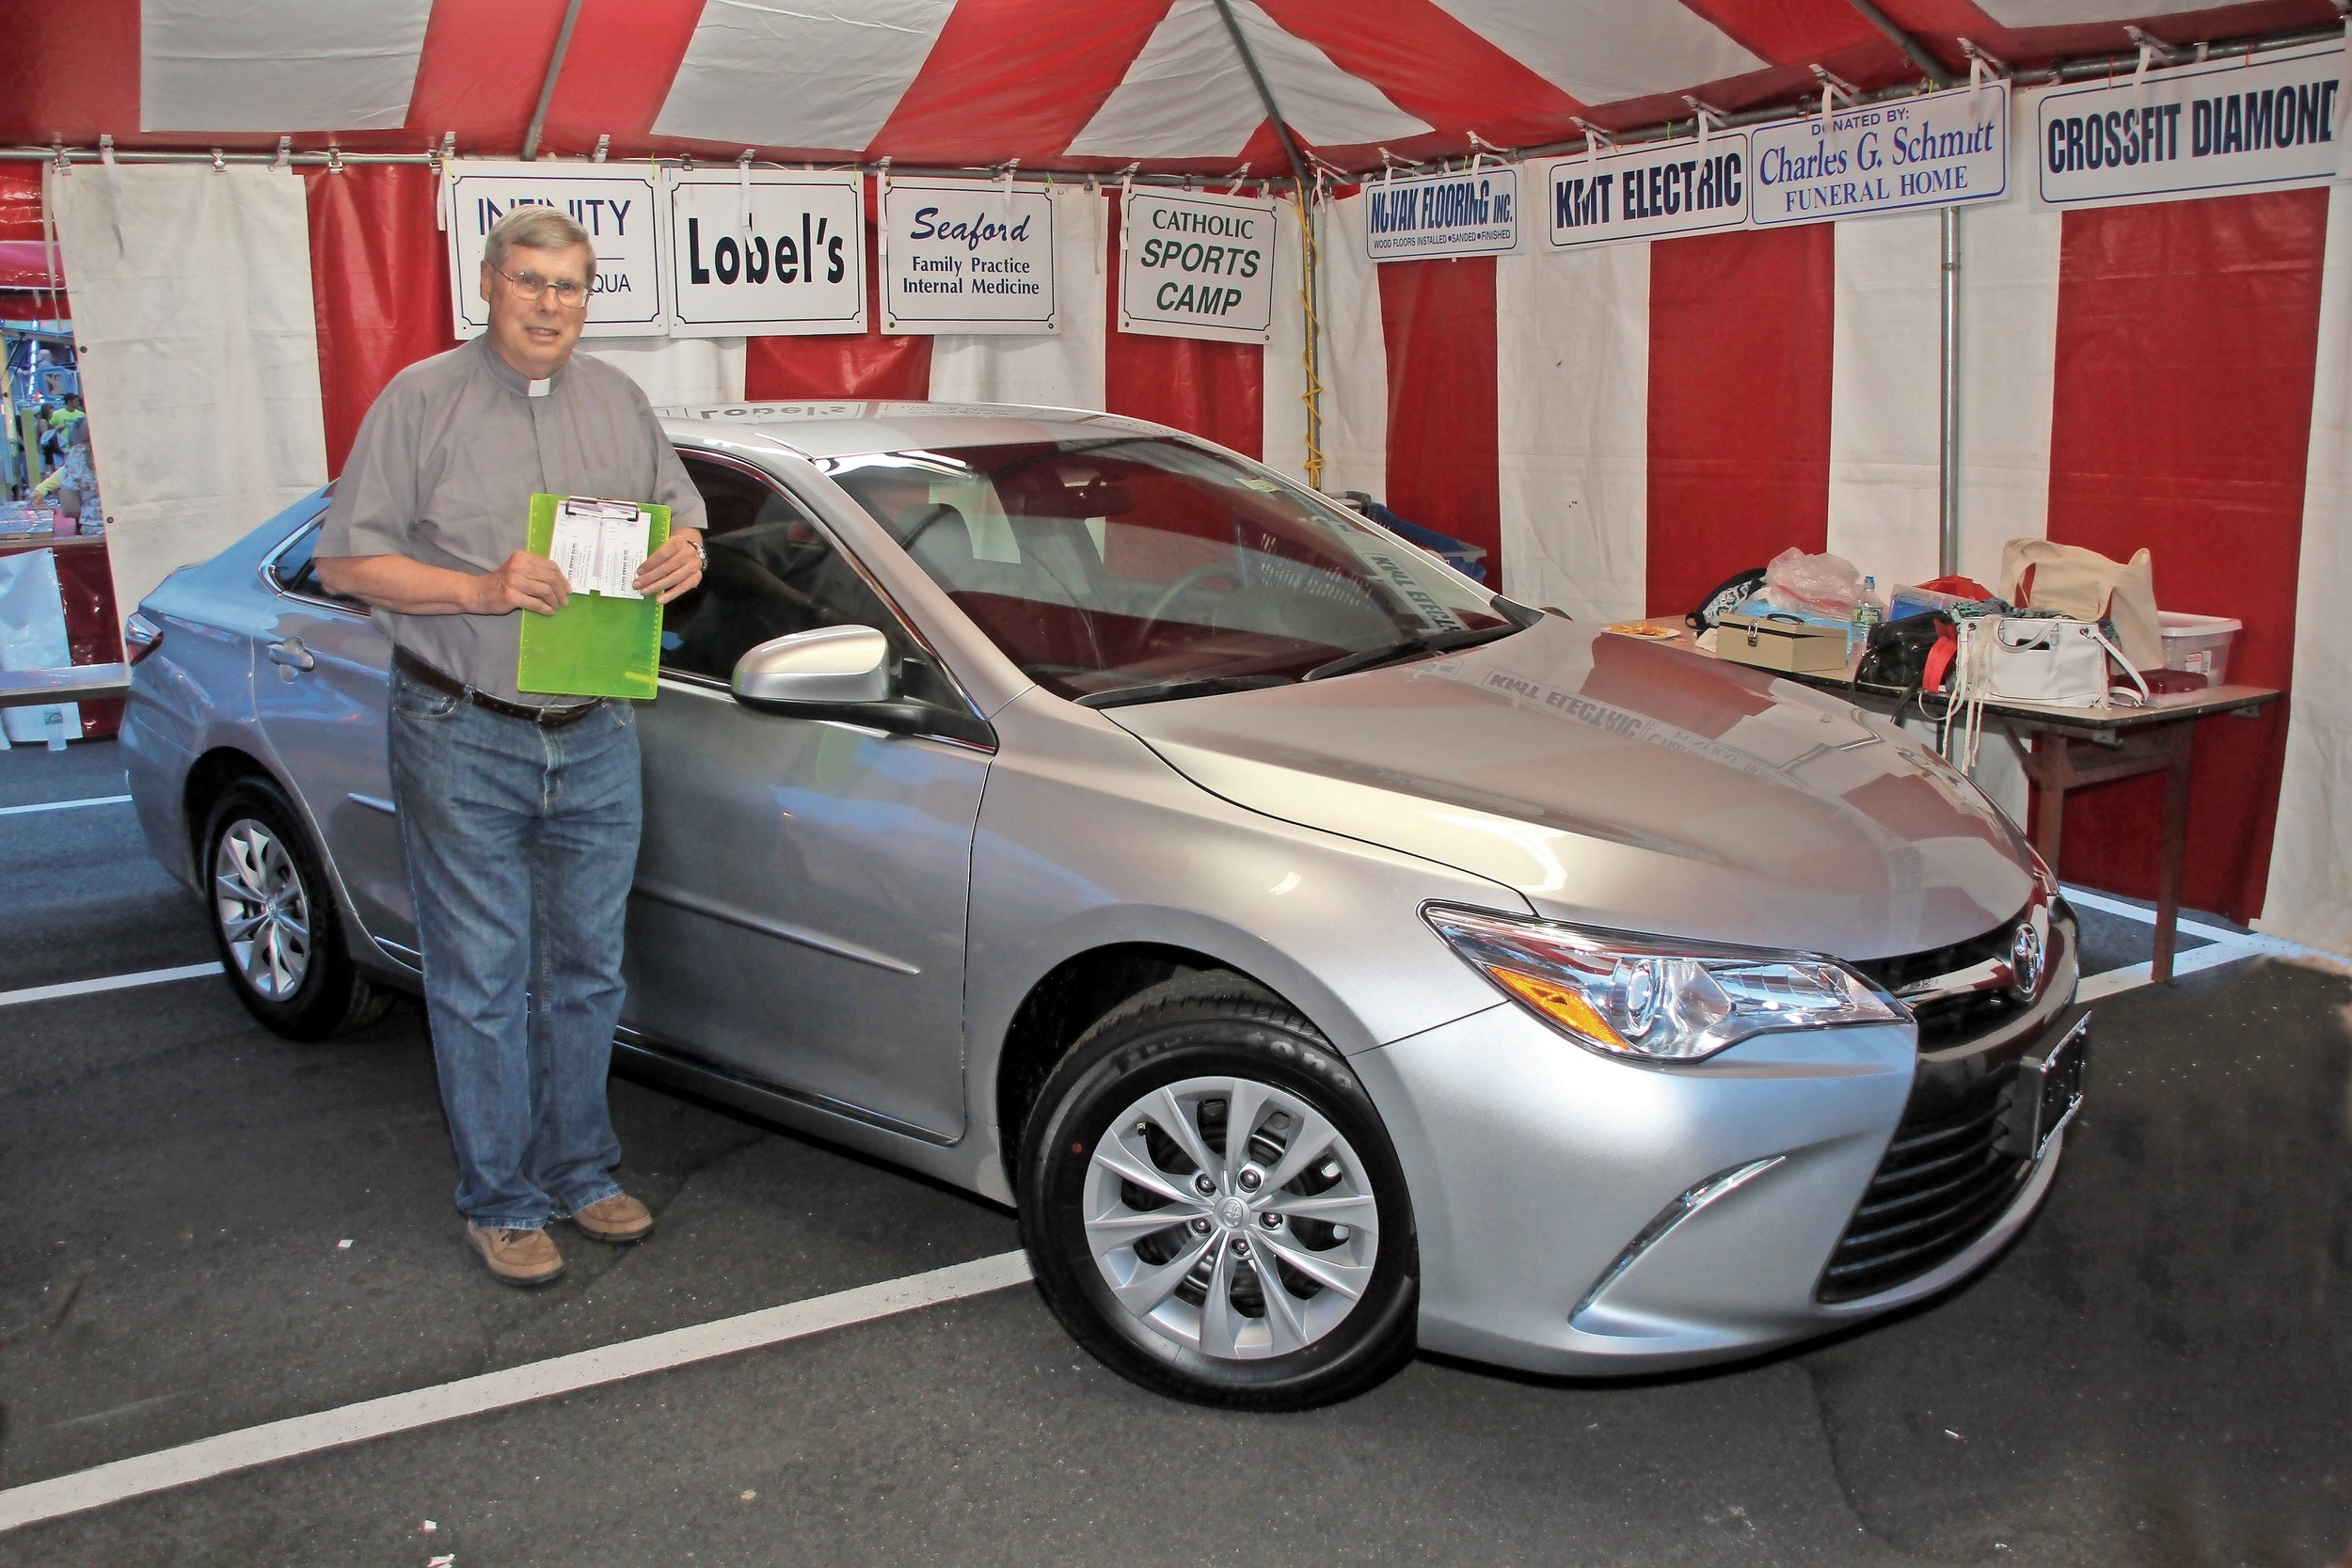 The Rev. Robert Hayden, pastor of St William the Abbot, showed fairgoers the raffle drawing grand prize: a 2017 Toyota Camry.